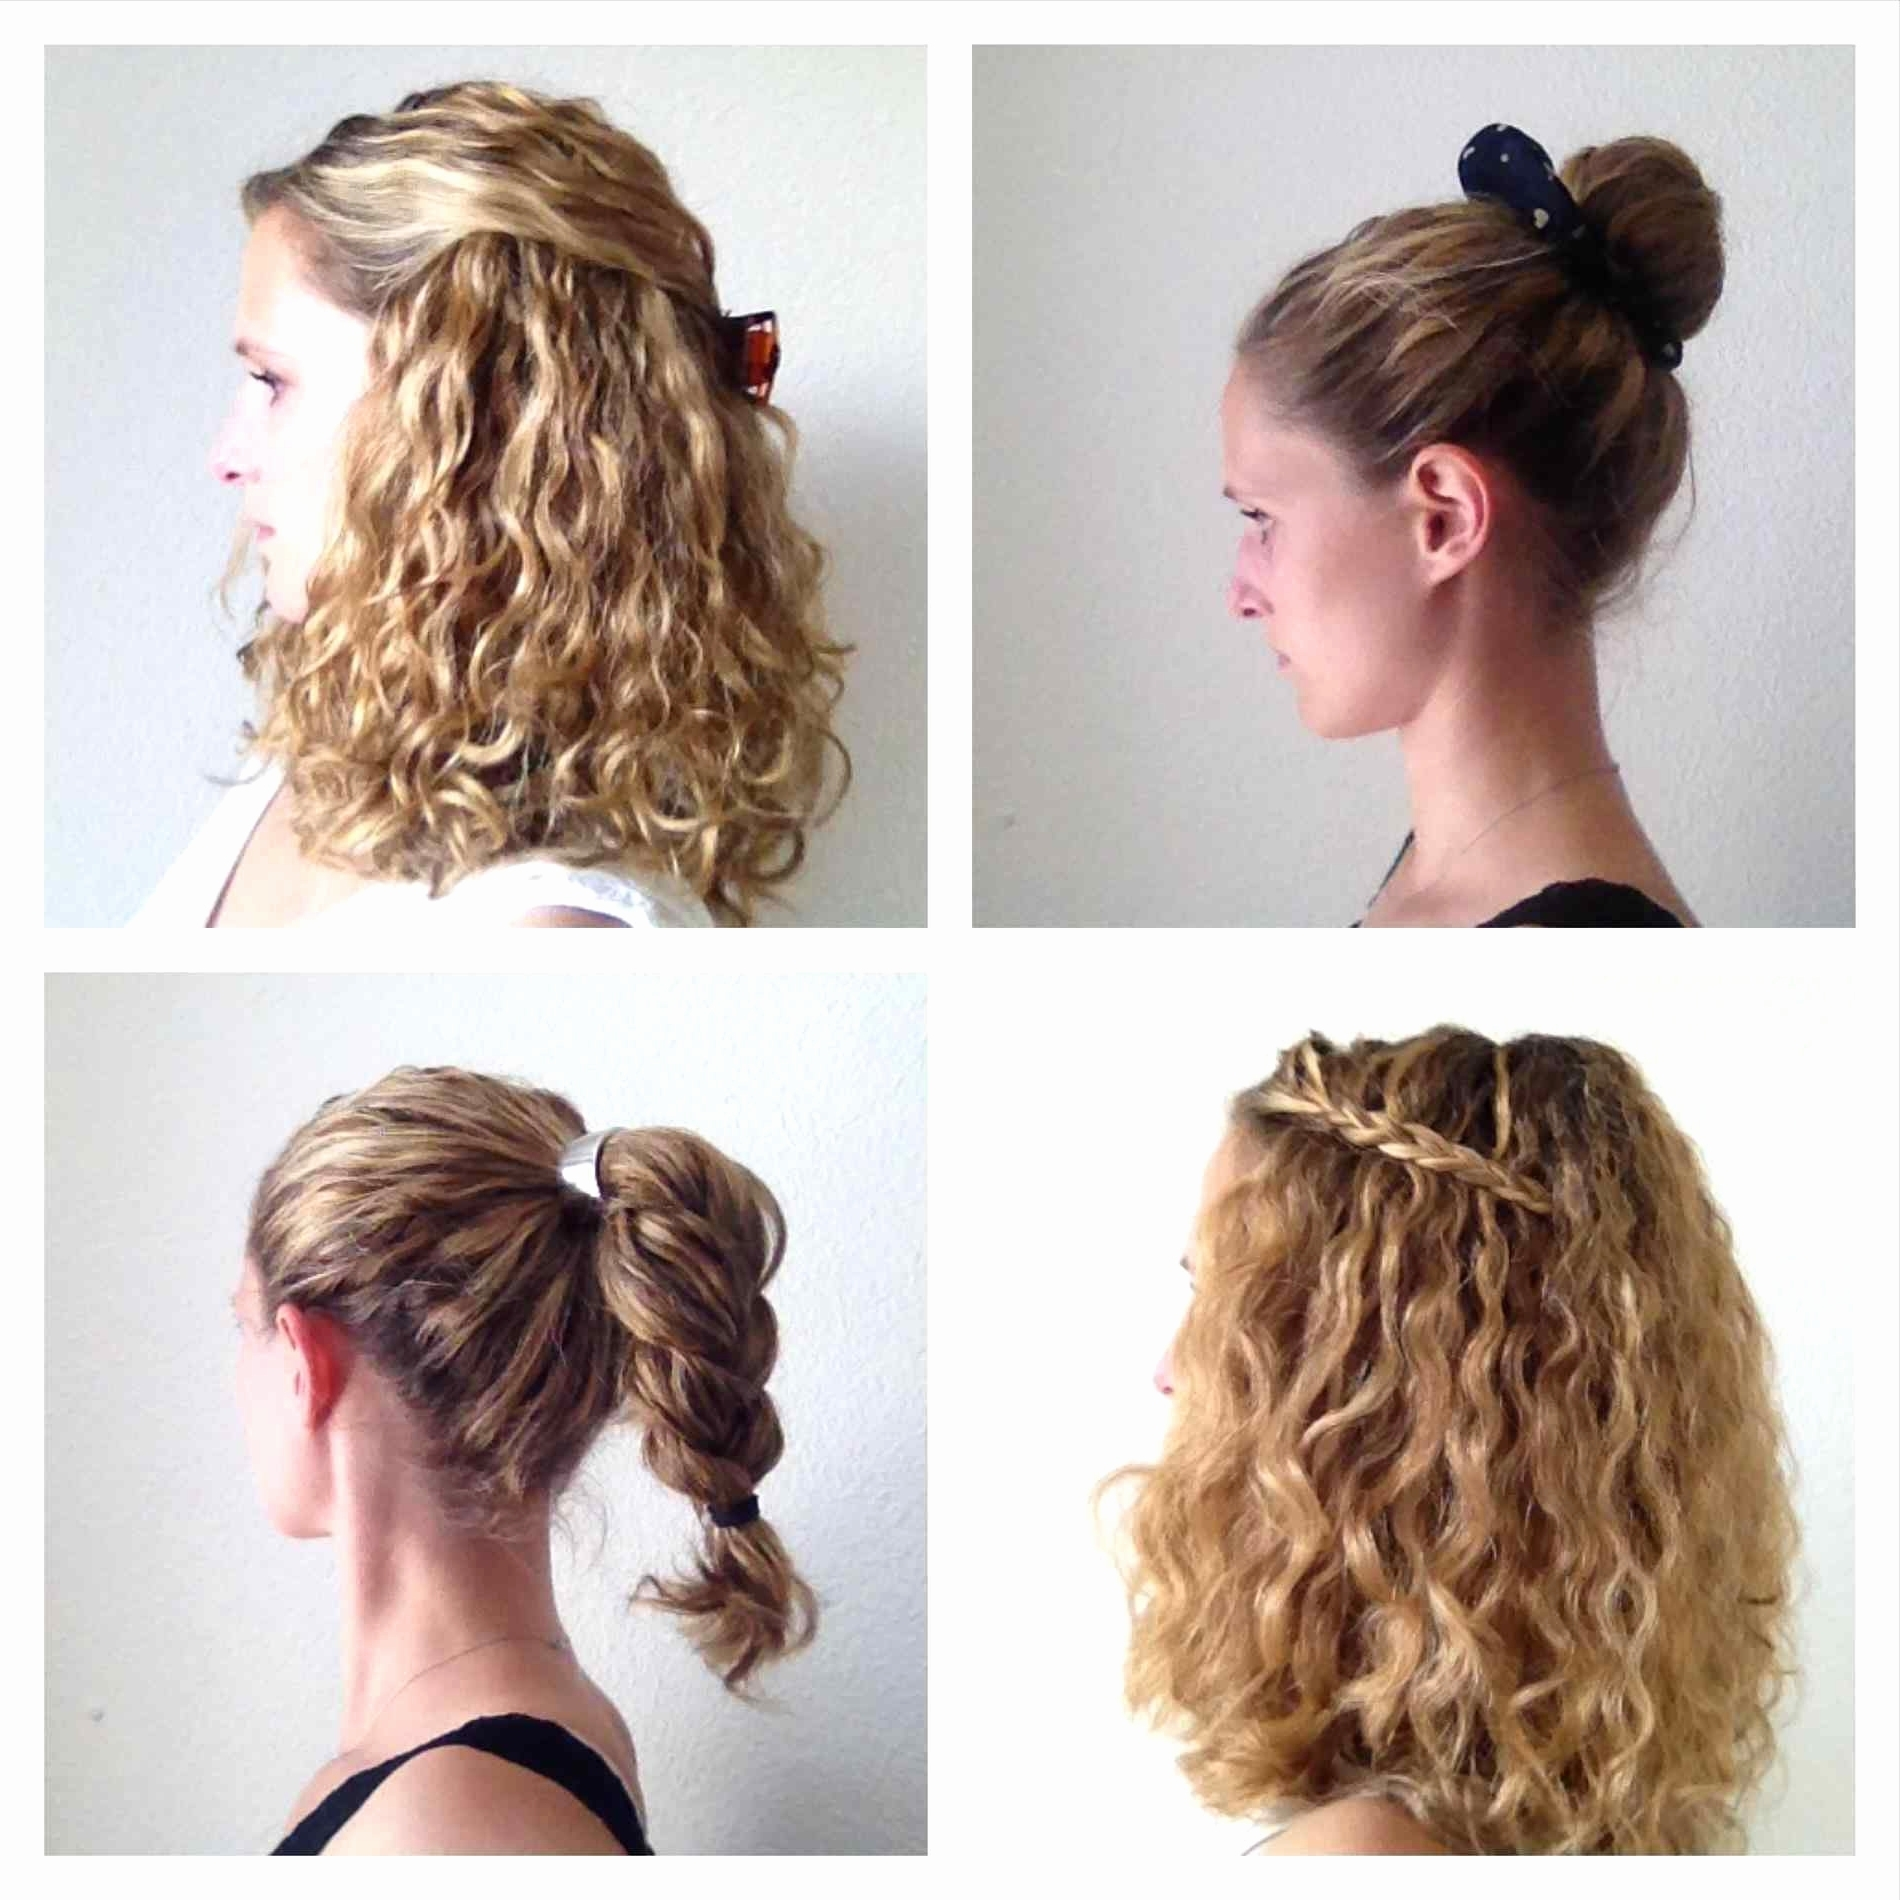 Magnificent Cute Updo Hairstyles For Curly Hair – Hair Inspiration Within Quick Updo Hairstyles For Curly Hair (View 13 of 15)